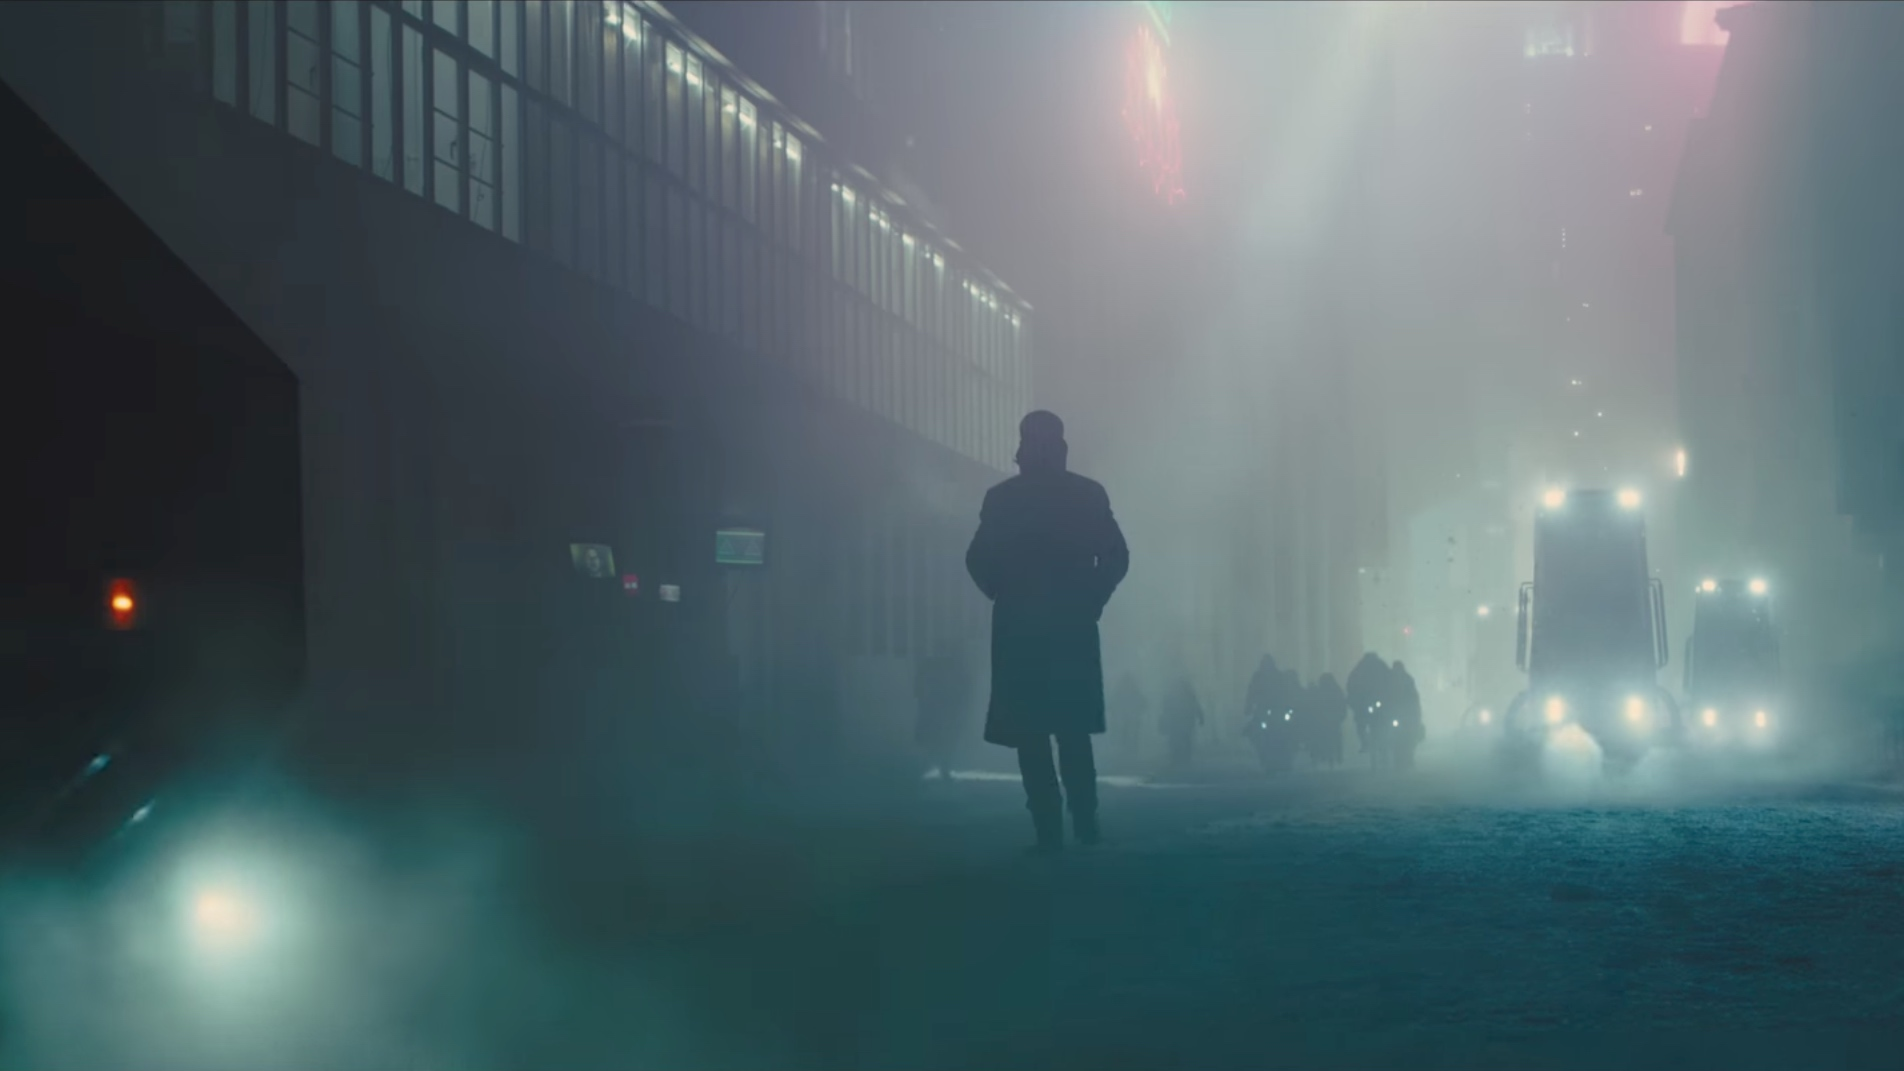 Blade Runner 2049 Wallpapers From Trailer 1920x1080: 'Blade Runner 2049' Is The Sequel We Didn't Know We Wanted